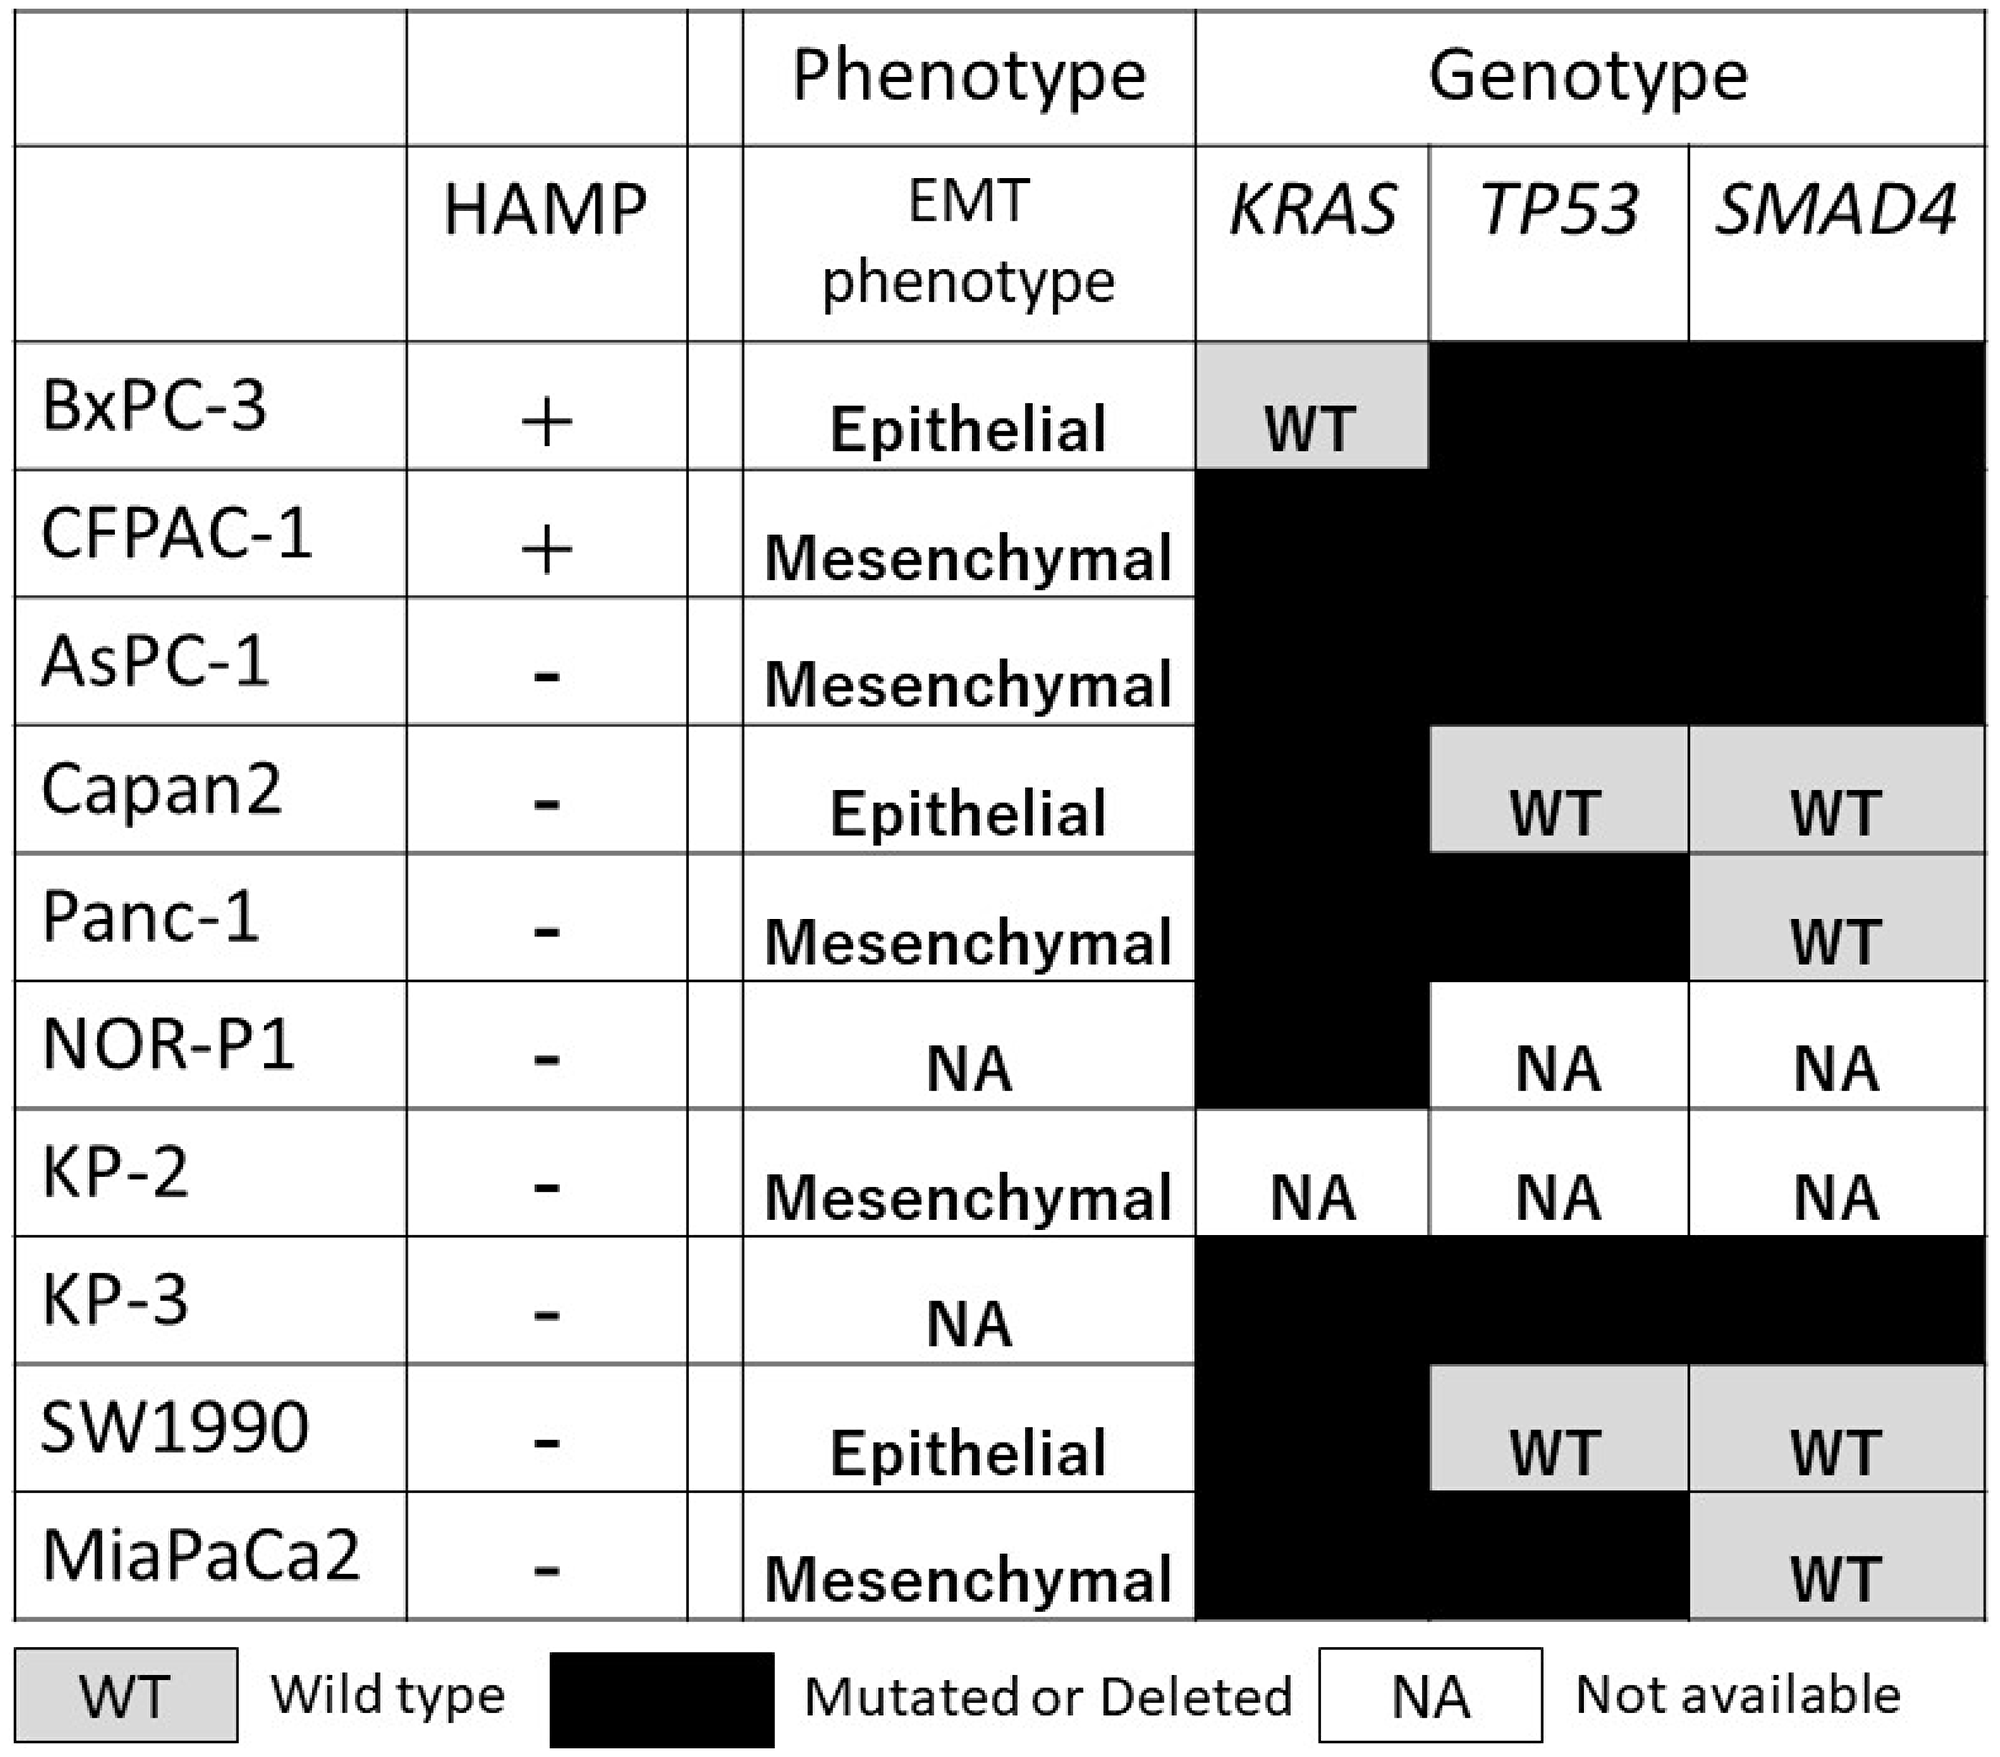 Correlation between HAMP and other known phenotype (epithelial/mesenchymal phenotype) and genotype (genetic alterations in the KRAS, TP53, and SMAD4) in a panel of 10 PDAC cell lines.